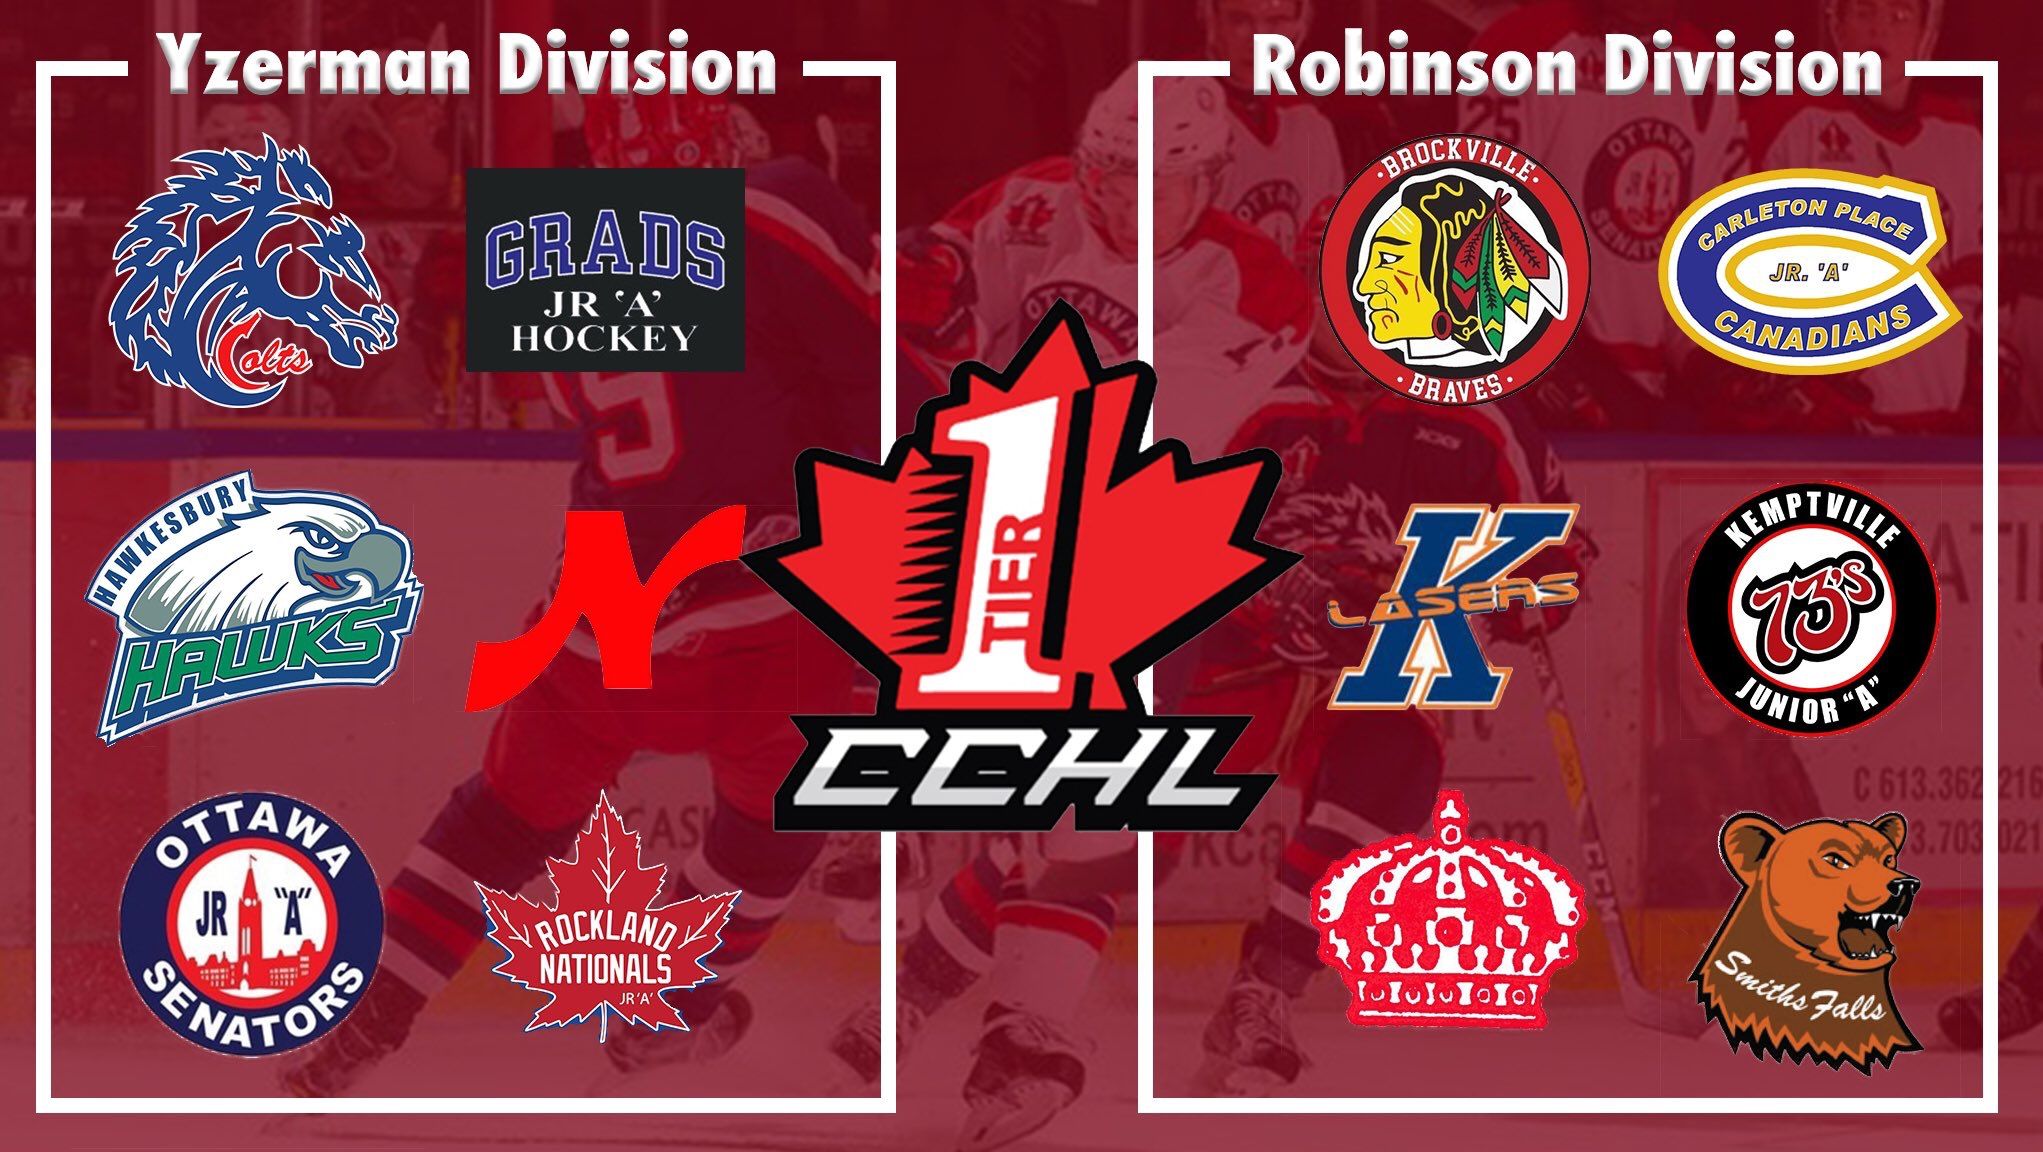 CCHL teams and divisions